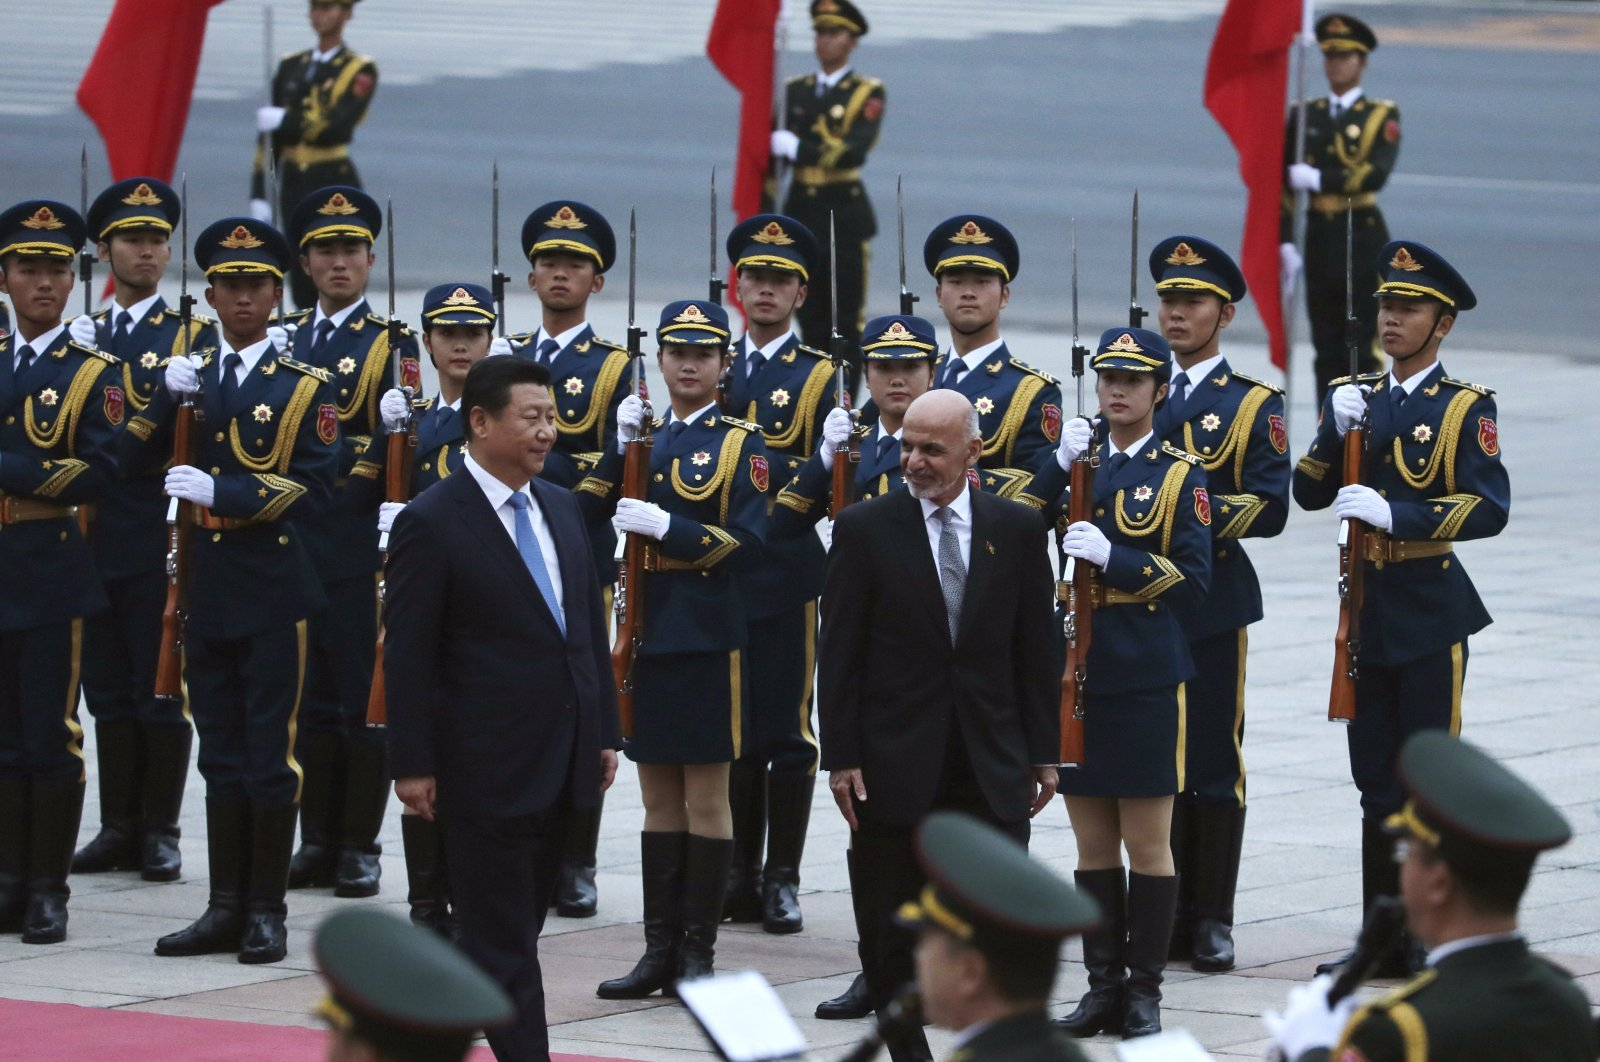 Afghan President Ashraf Ghani Ahmadzai, center right, and Chinese President Xi Jinping, center left, review a guard of honor during a welcome ceremony outside the Great Hall of the People in Beijing, China, Oct. 28, 2014. (AP Photo)